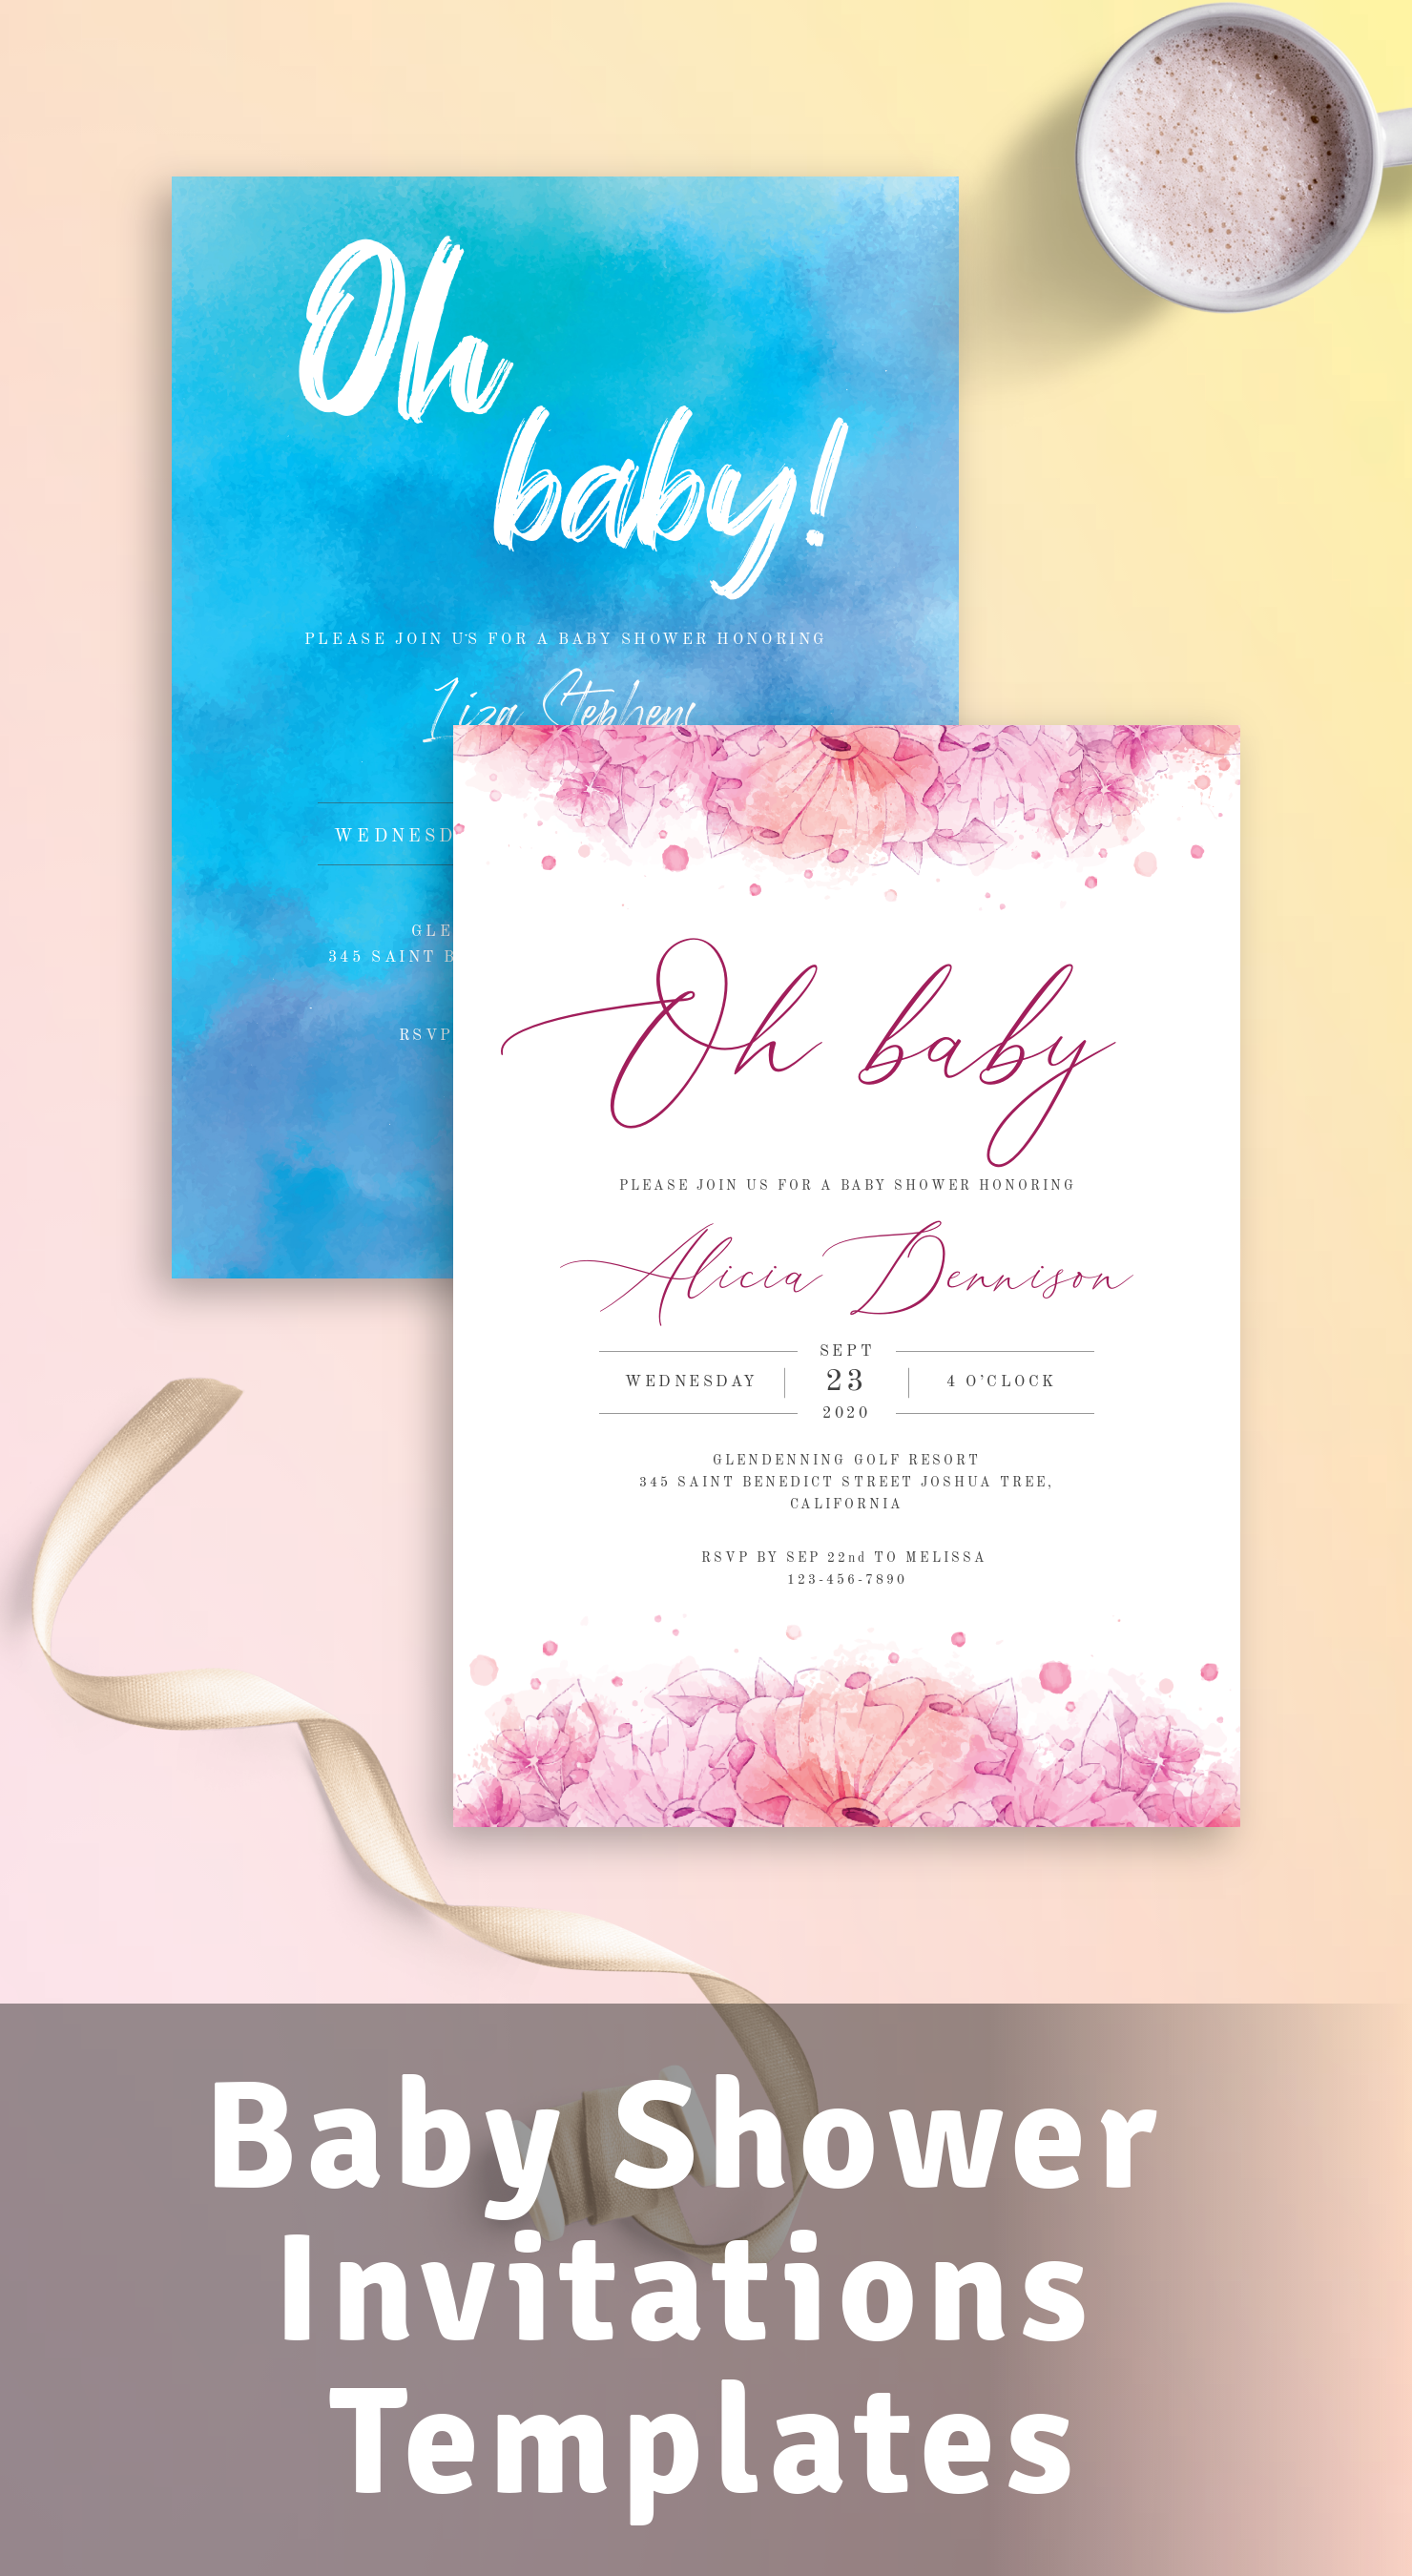 Customize and Get Baby Shower Invitations